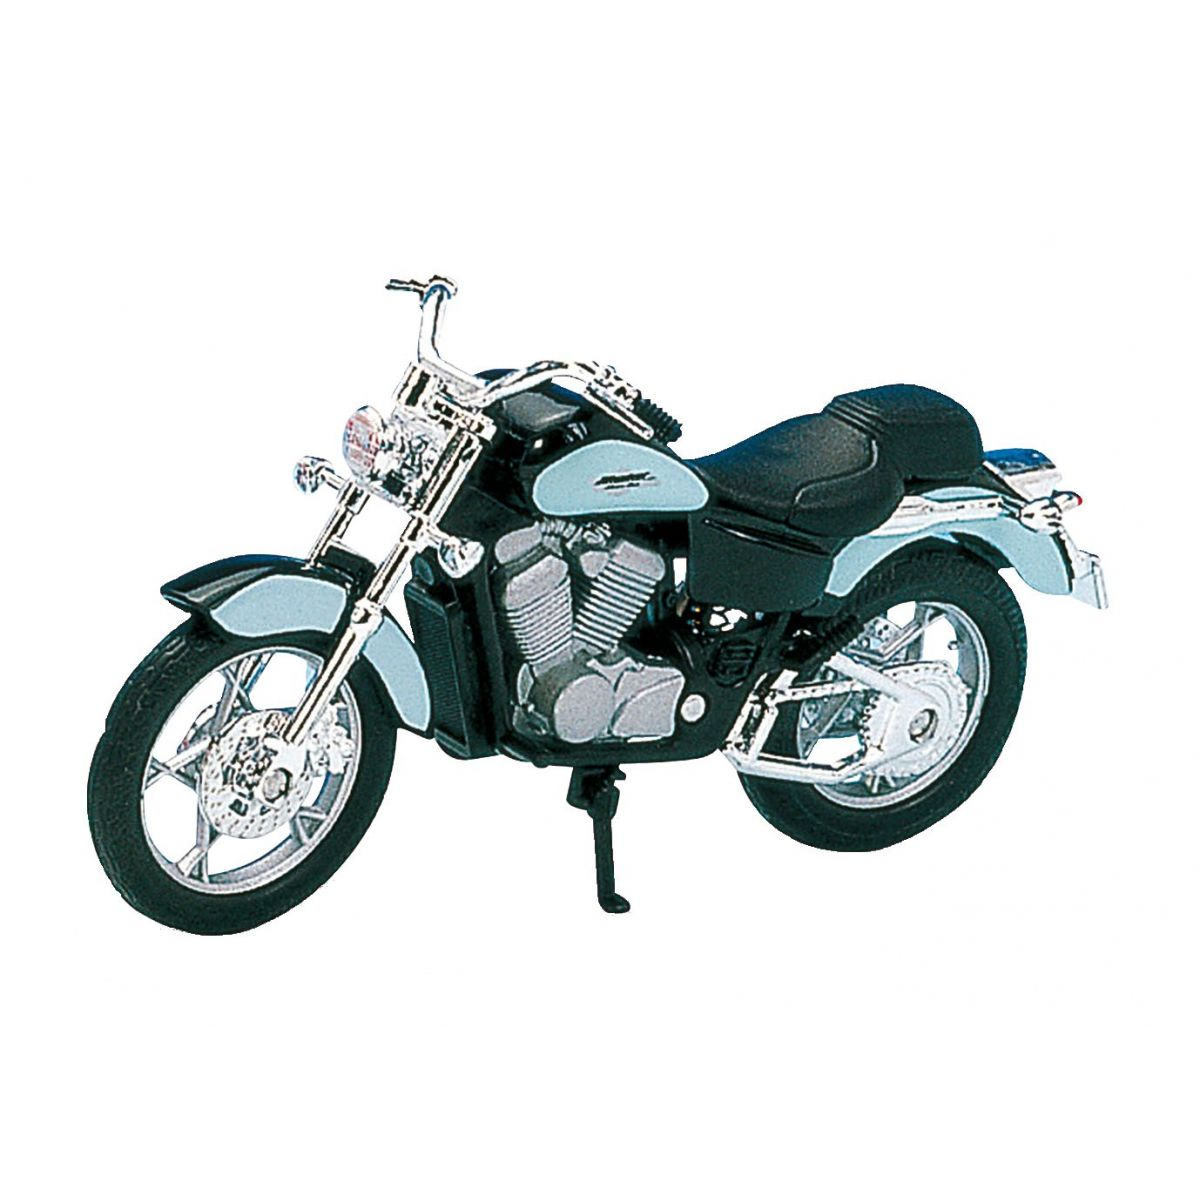 Dromader Welly Motorka 11cm - Honda Shadow VT1100C